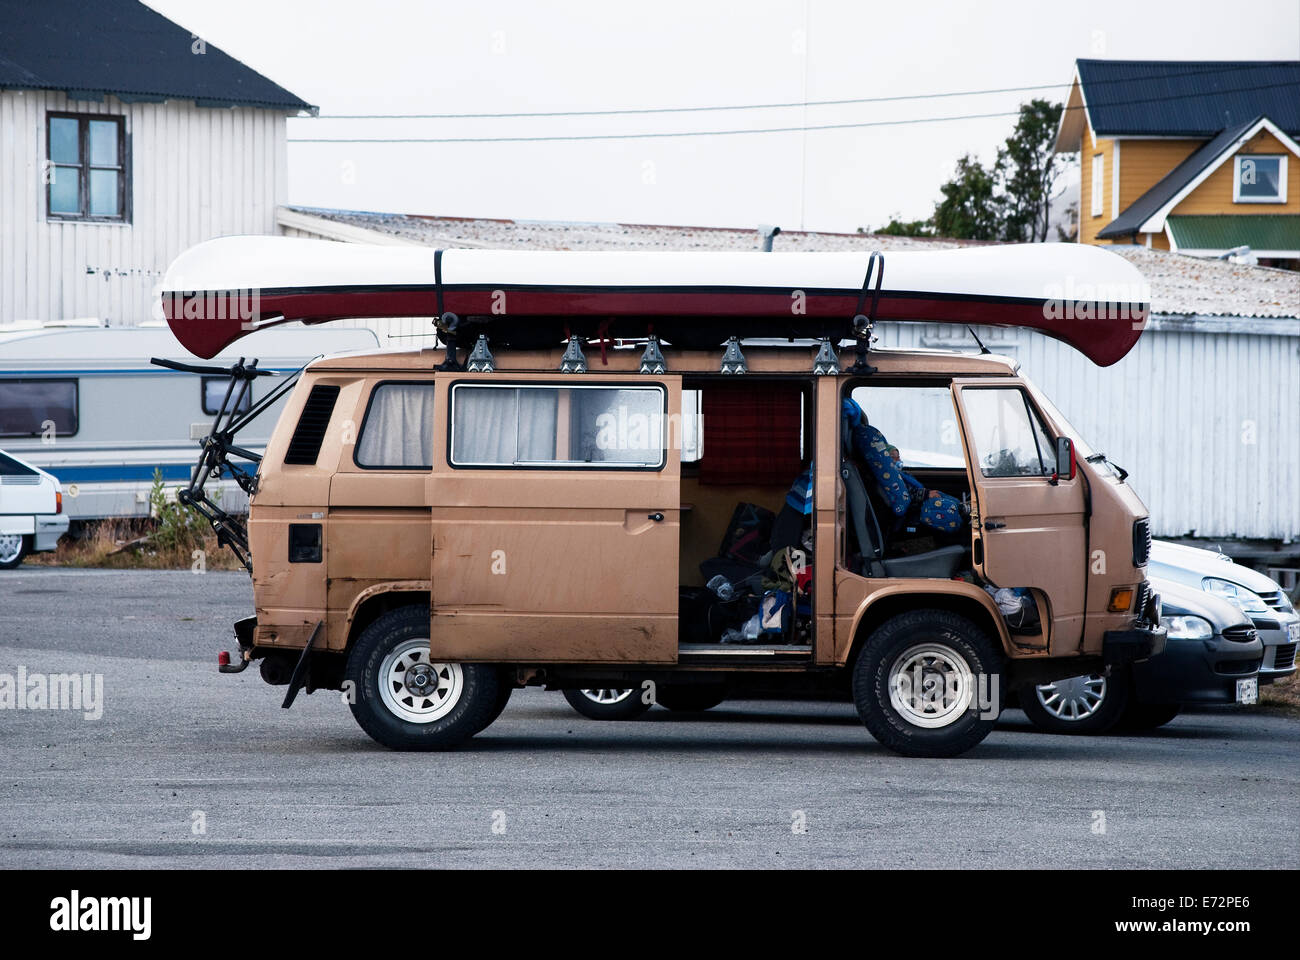 Classic vw camper - caravan with kayak on the roof. - Stock Image